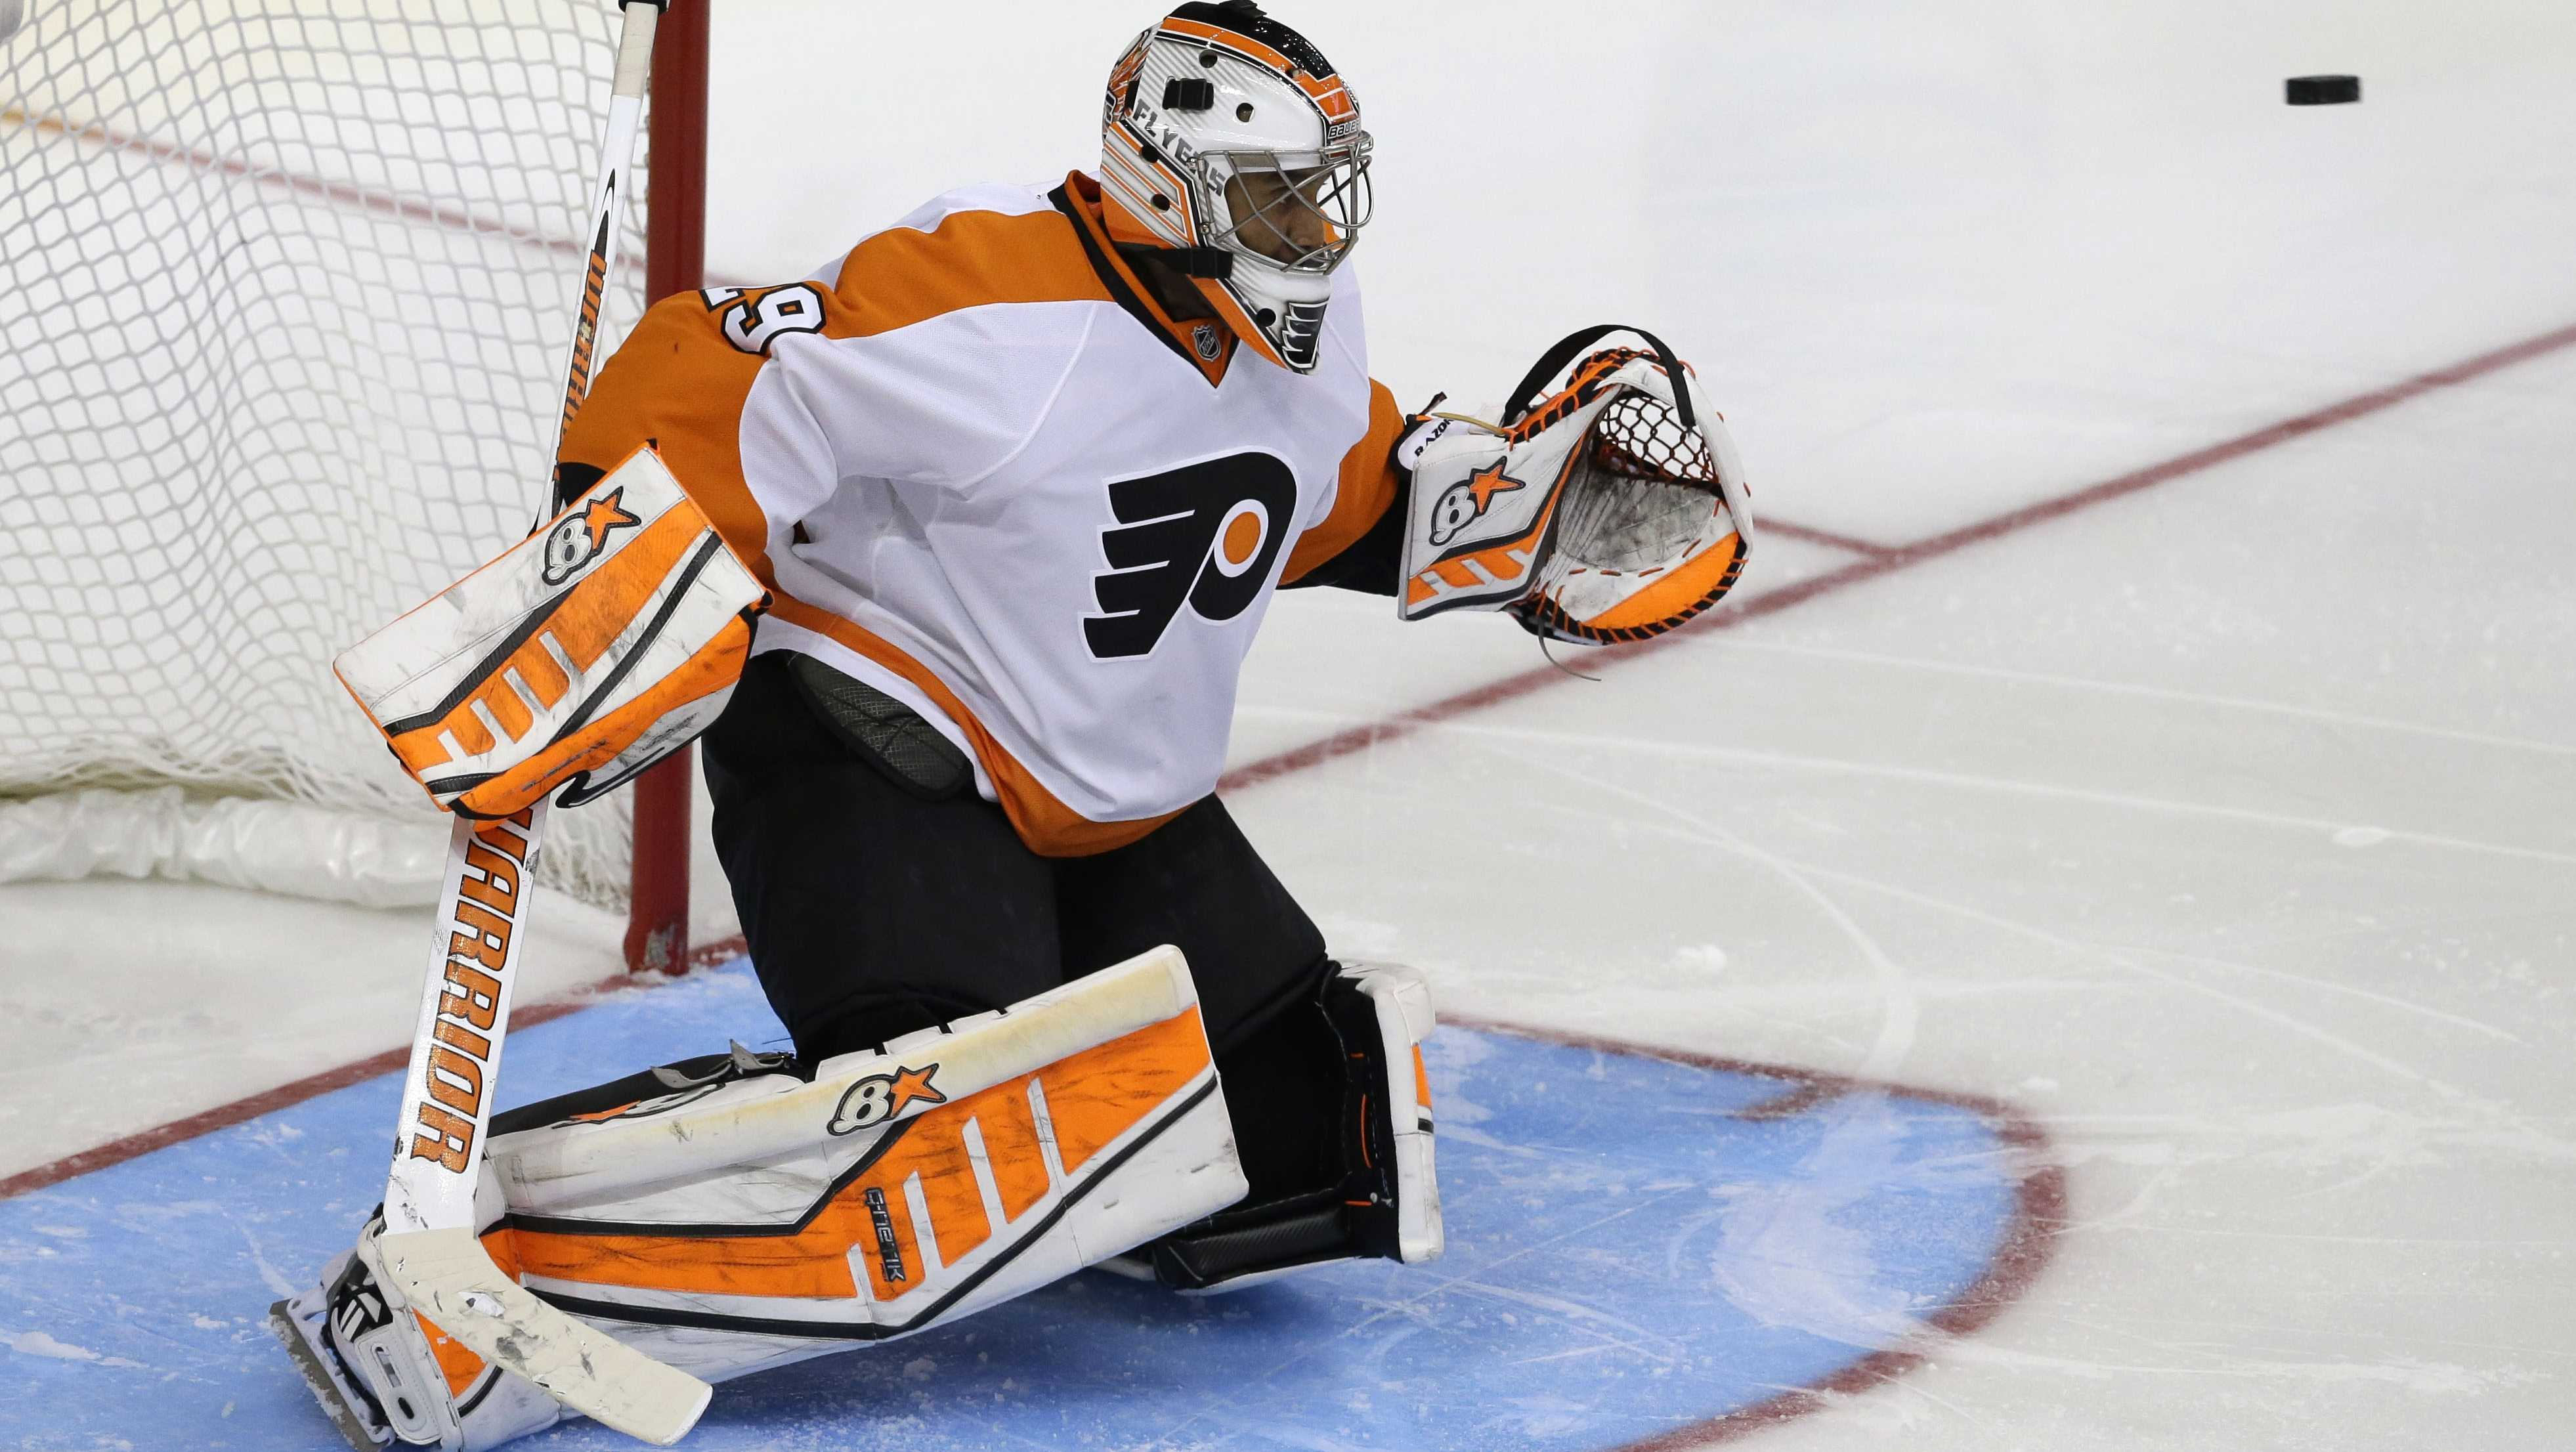 Philadelphia Flyers goalie Ray Emery (29) defends the goal during the third period of an NHL hockey game against the Dallas Stars Saturday, Oct. 18, 2014, in Dallas. The Flyers won 6-5 in overtime.